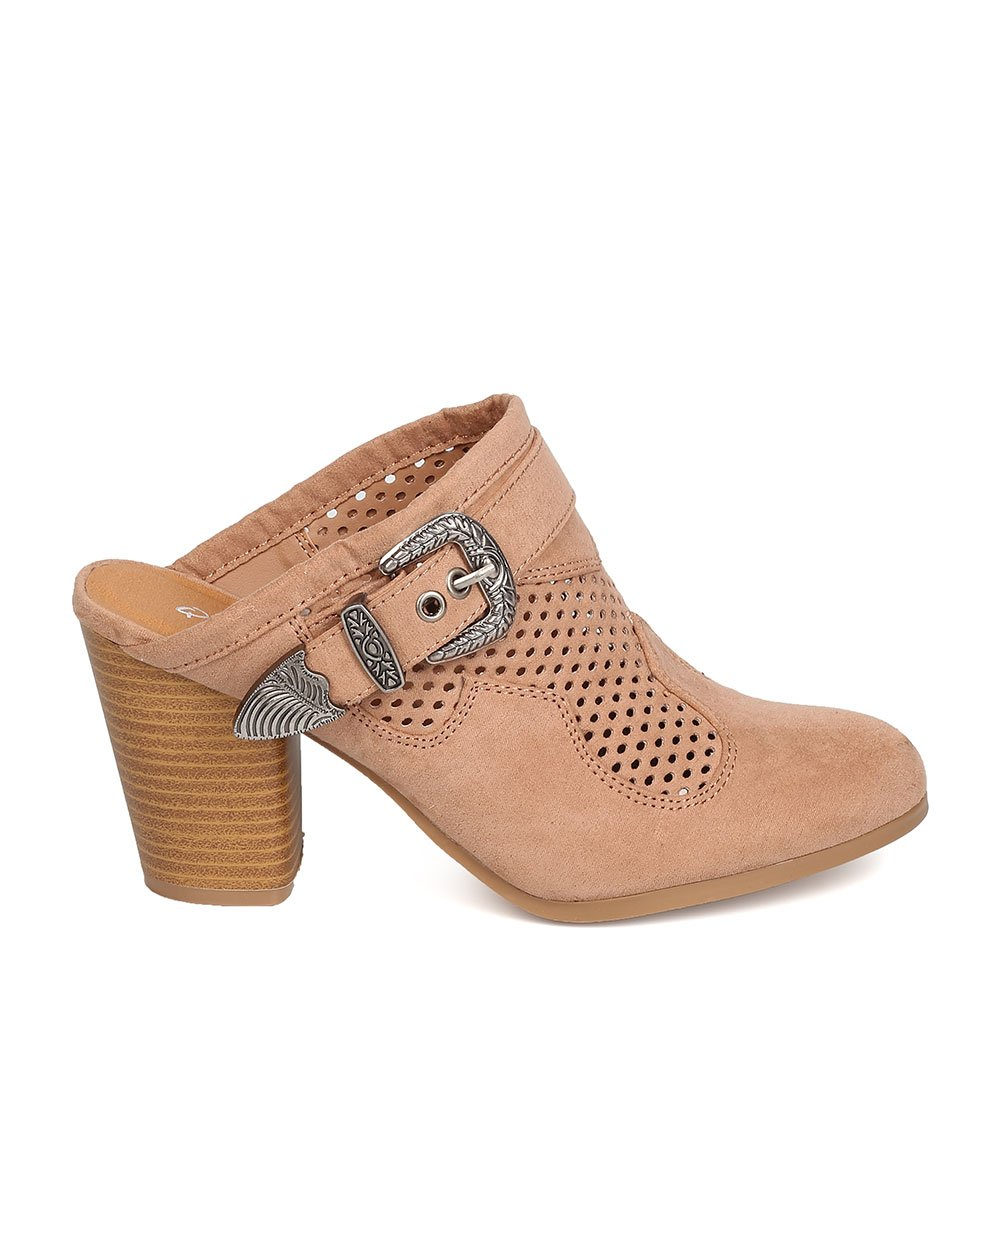 Qupid Women Faux Suede Perforated Buckled Chunky Heel Mule FD91 - Taupe (Size: 7.5) by Qupid (Image #2)